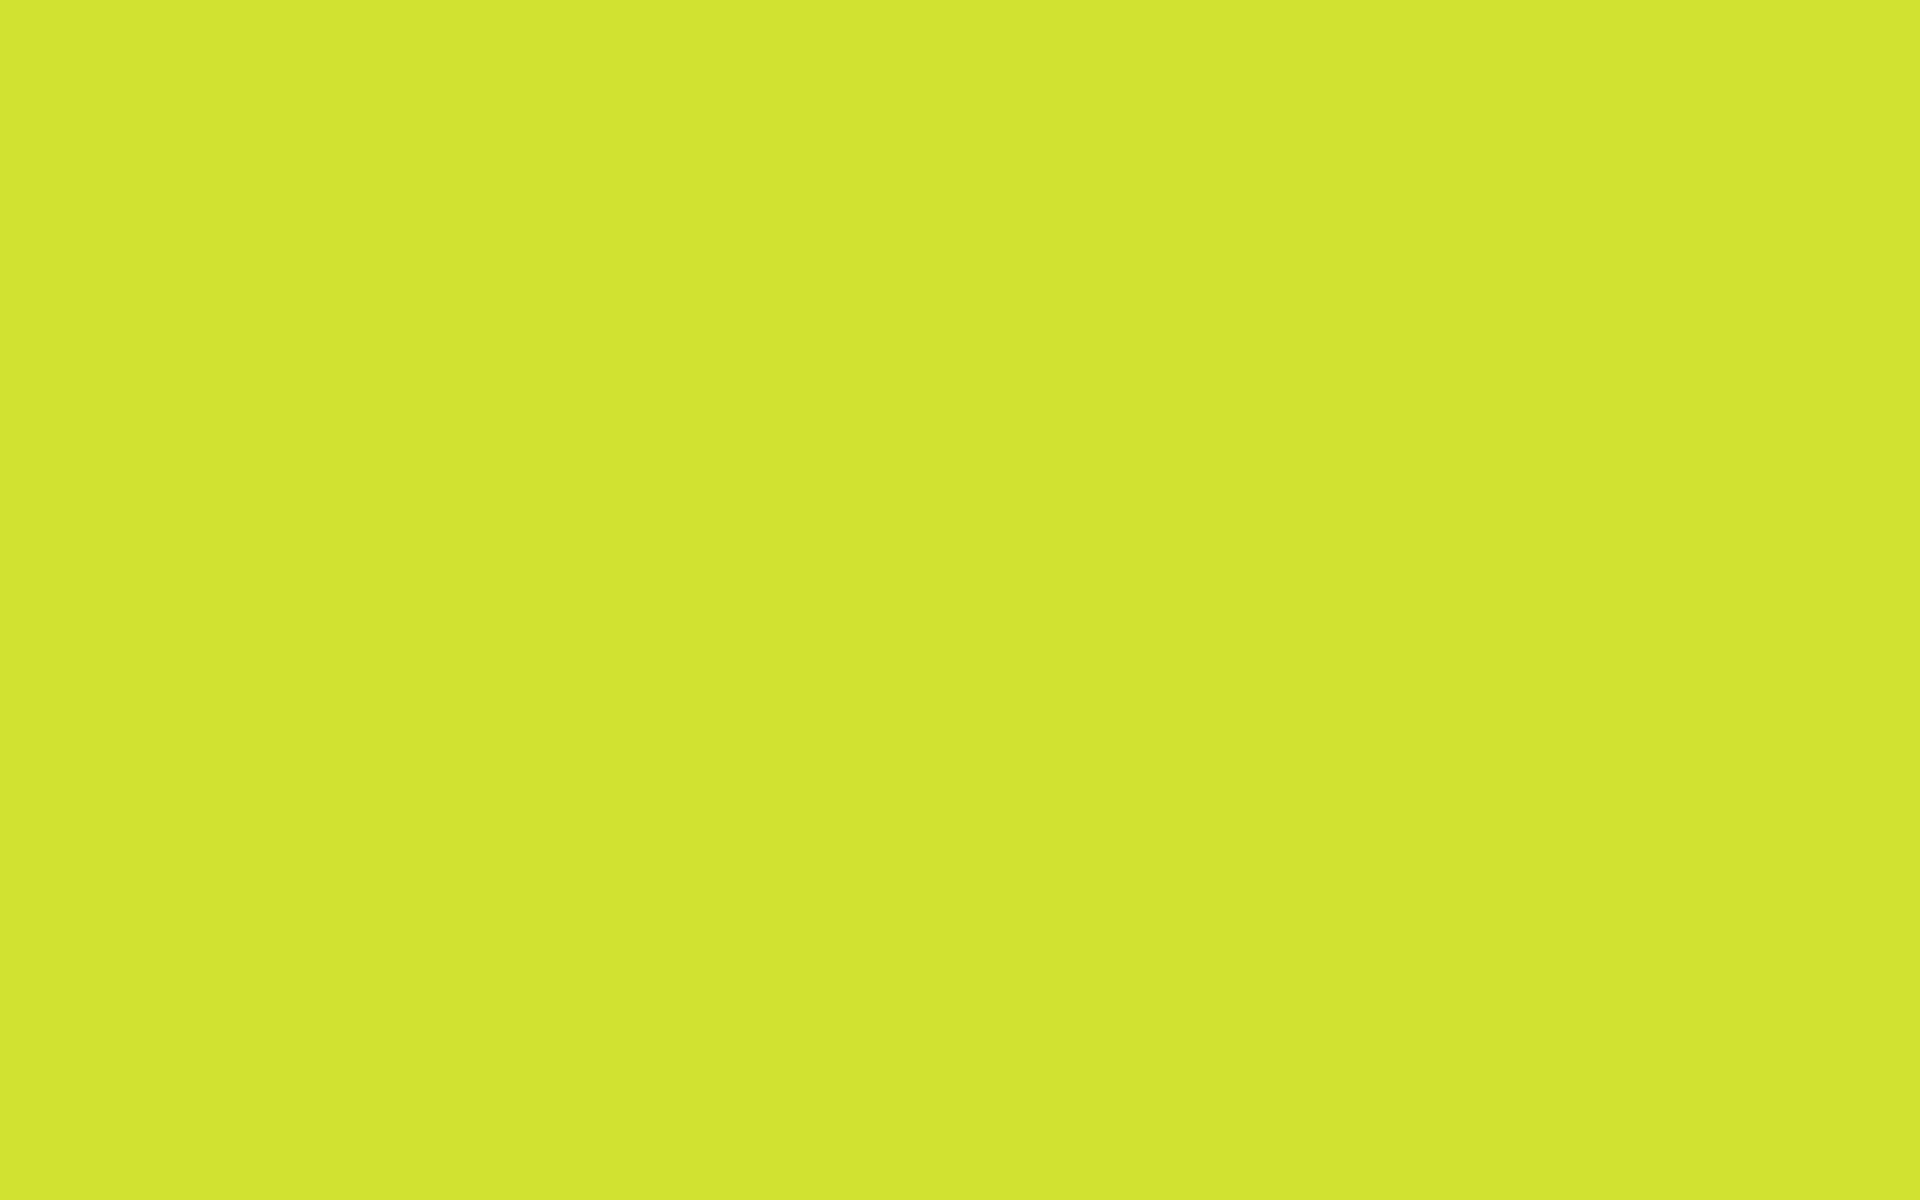 1920x1200 Pear Solid Color Background